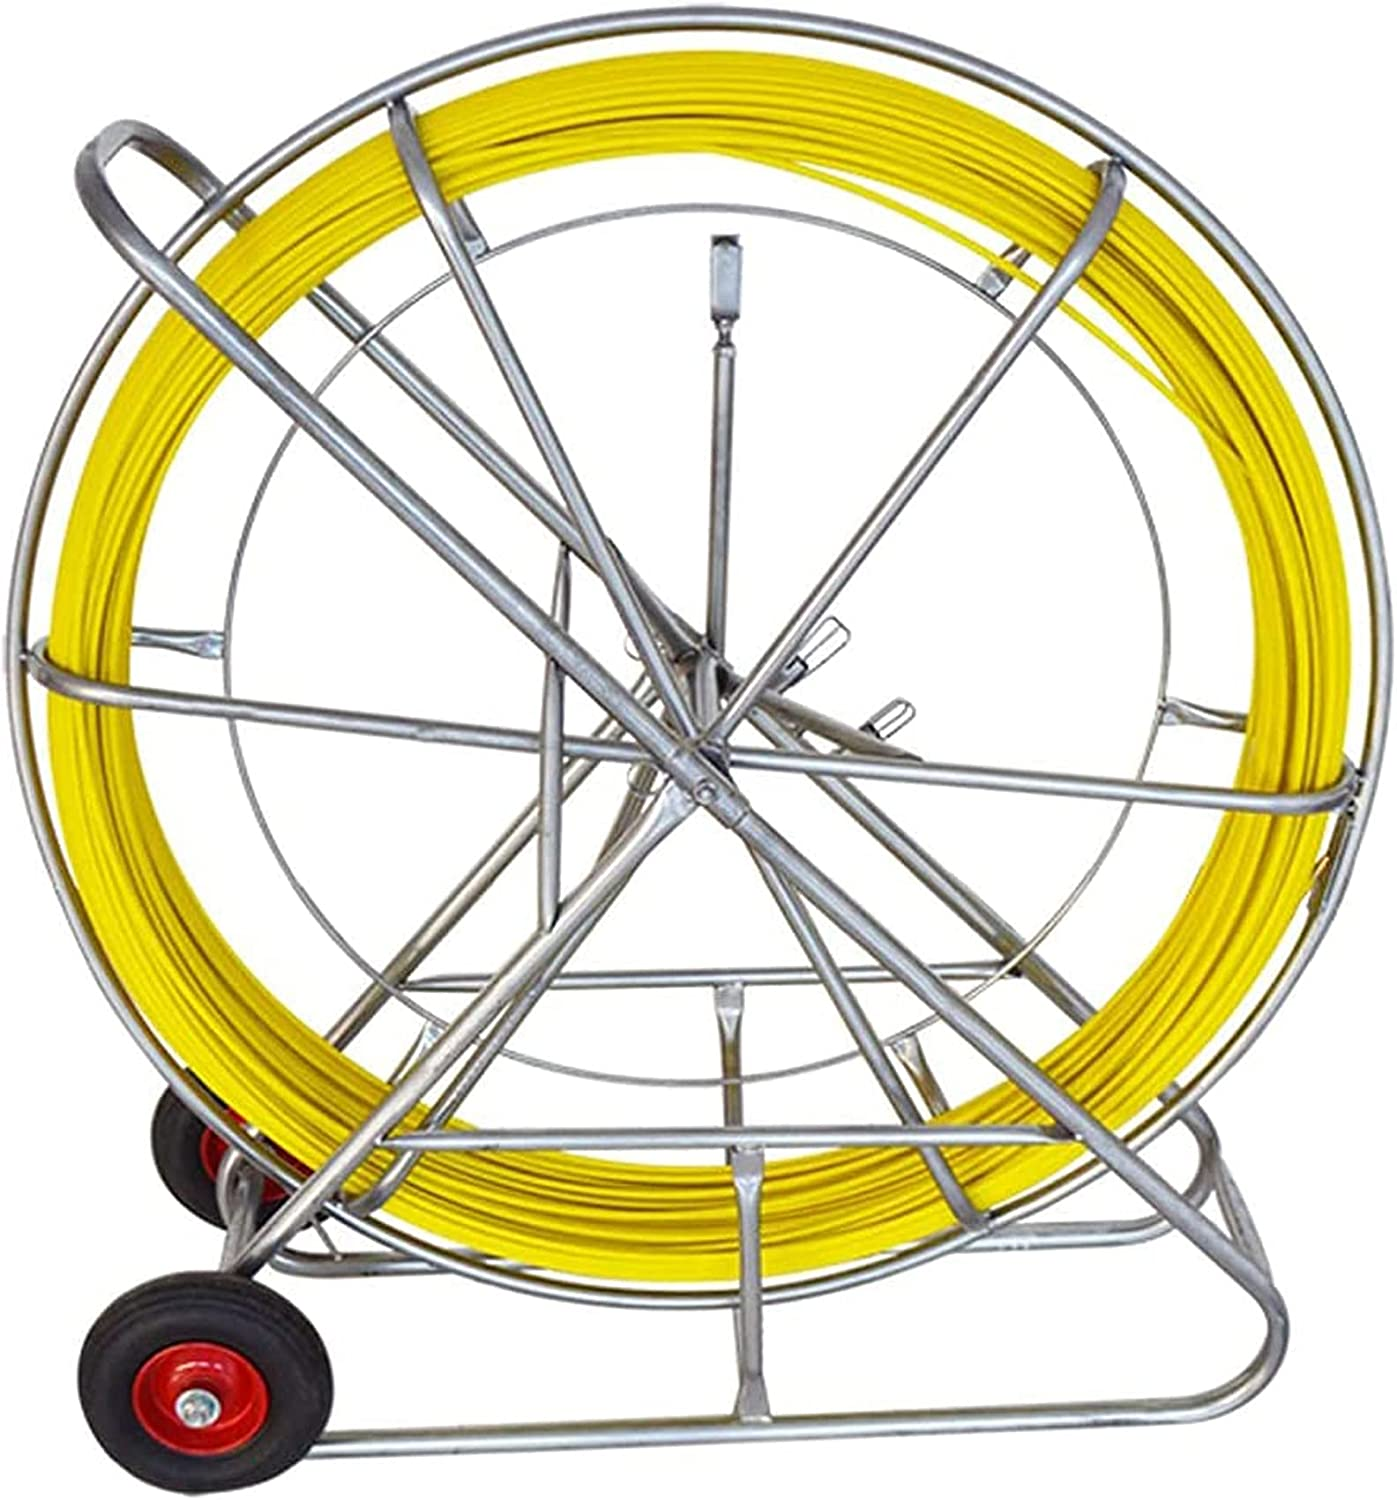 TECHTONGDA Duct Rodder Fish Free shipping Tape Continuous Fiberglass Wire Free Shipping New Cabl